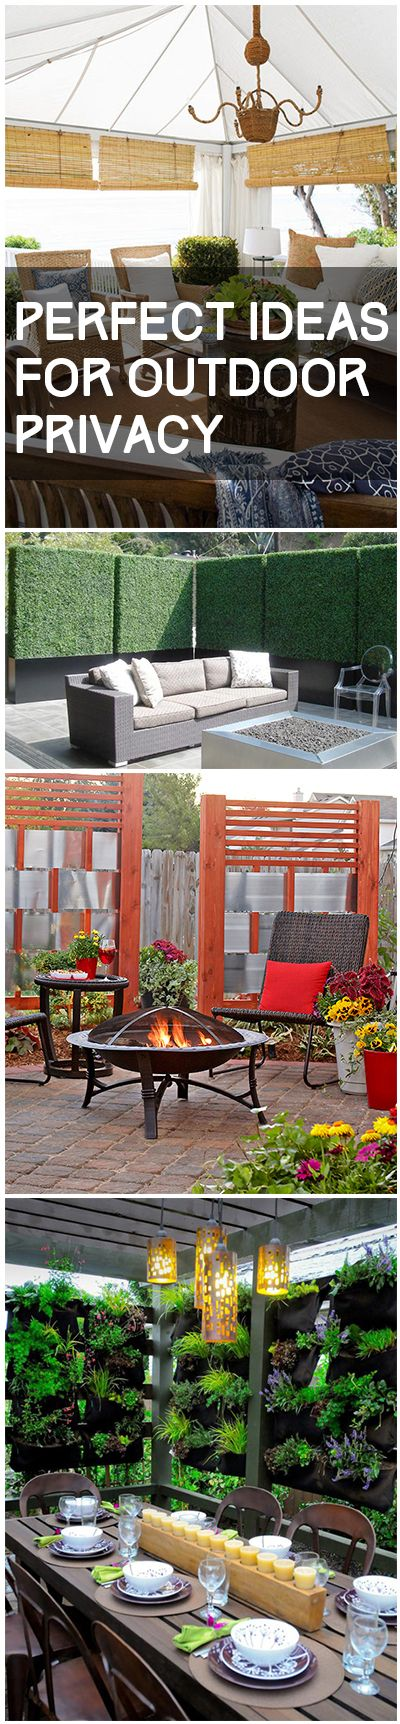 perfect ideas for outdoor privacy - | outdoor privacy, living ... - Outdoor Patio Privacy Ideas